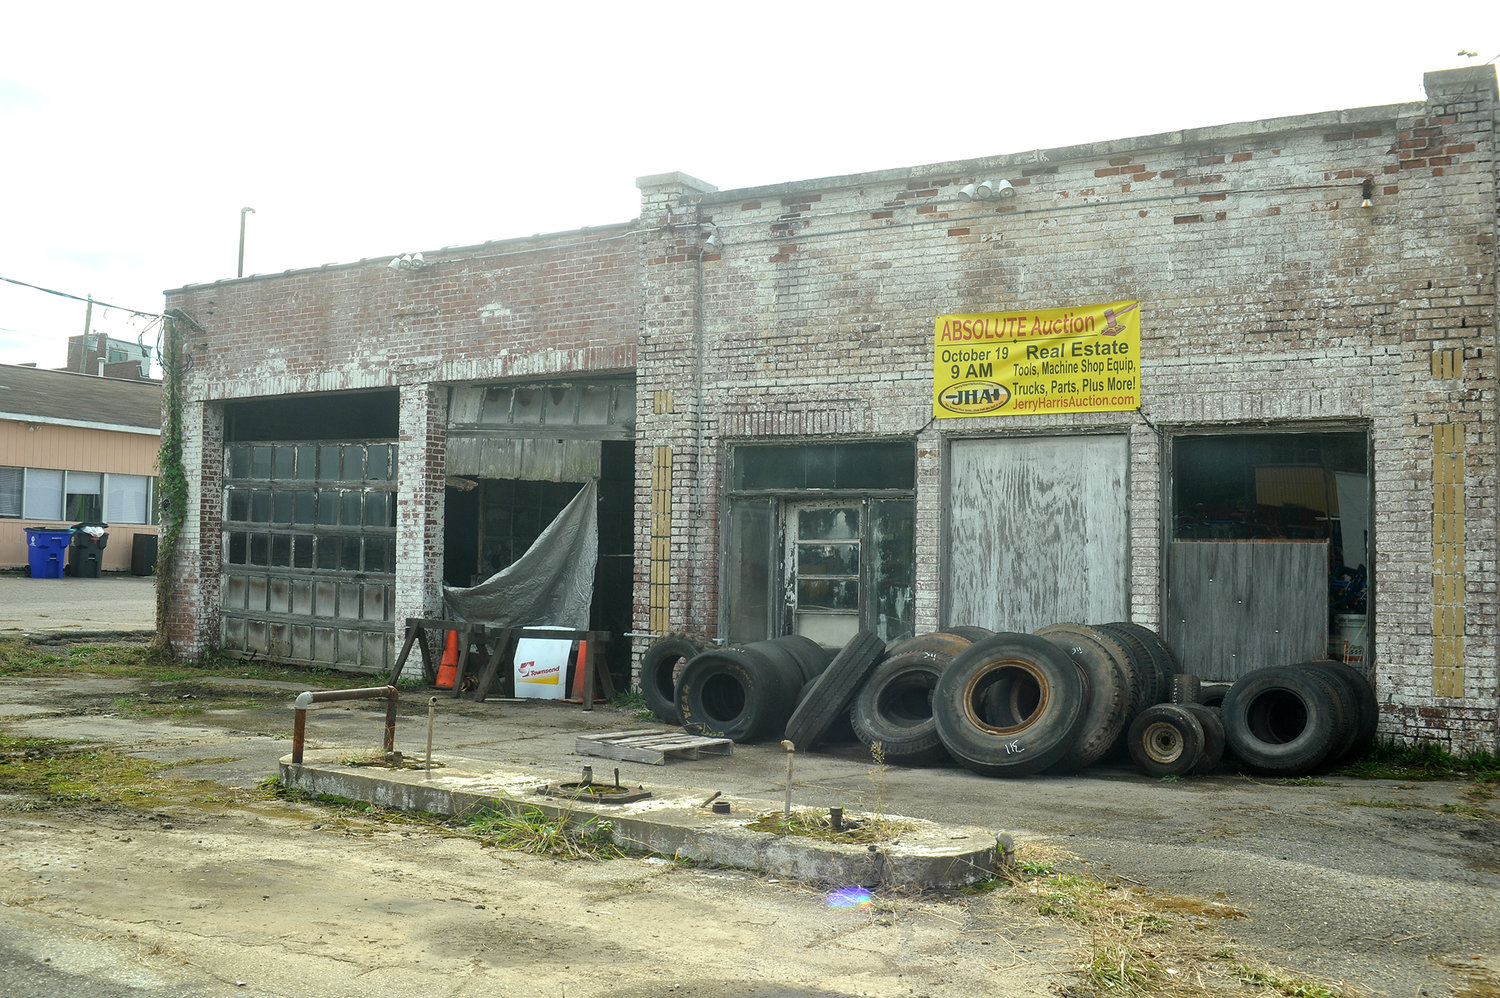 An absolute auction was held last Saturday at the old S&W Speed Shop on N. Second Avenue in Siler City. Former owner Bobby Smith, an avid drag-racer, also offered car repairs at his shop. The building, parts and tools were all sold to the highest bidder.